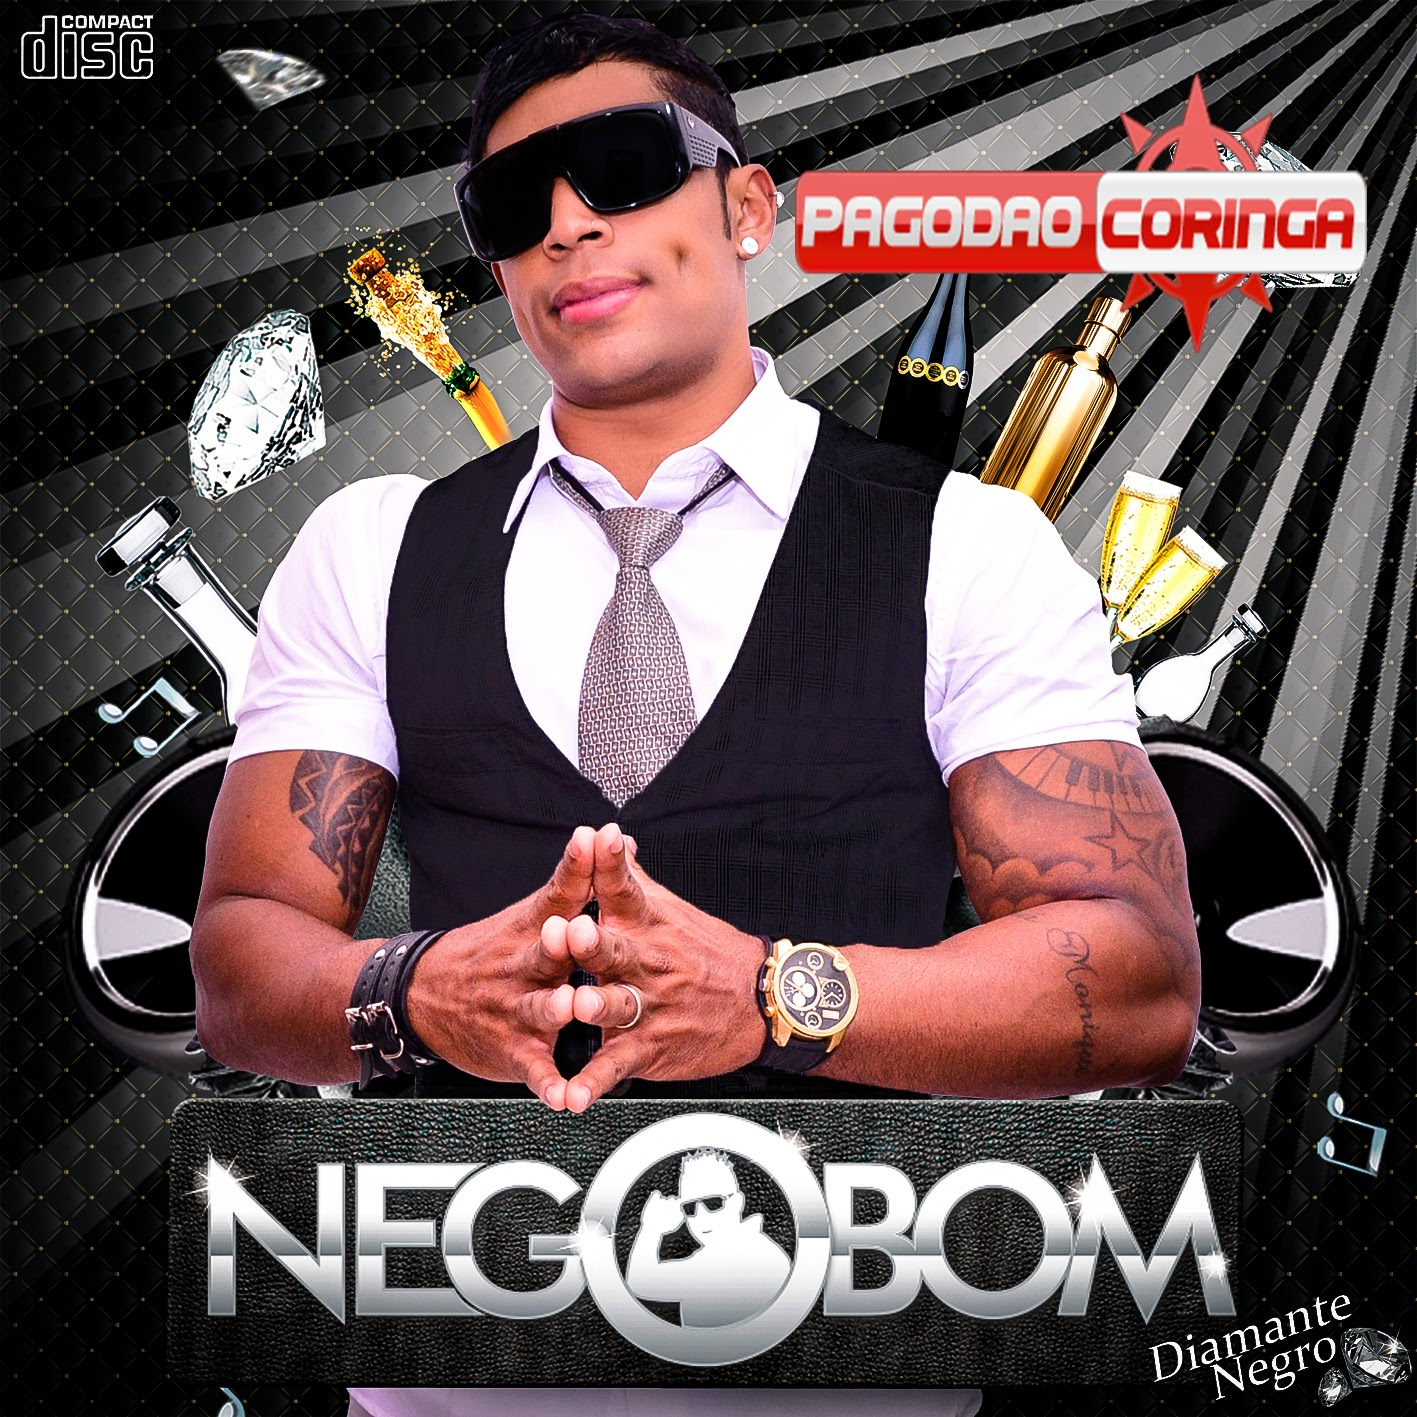 Nego Bom - Diamante Negro —Exclusivo—